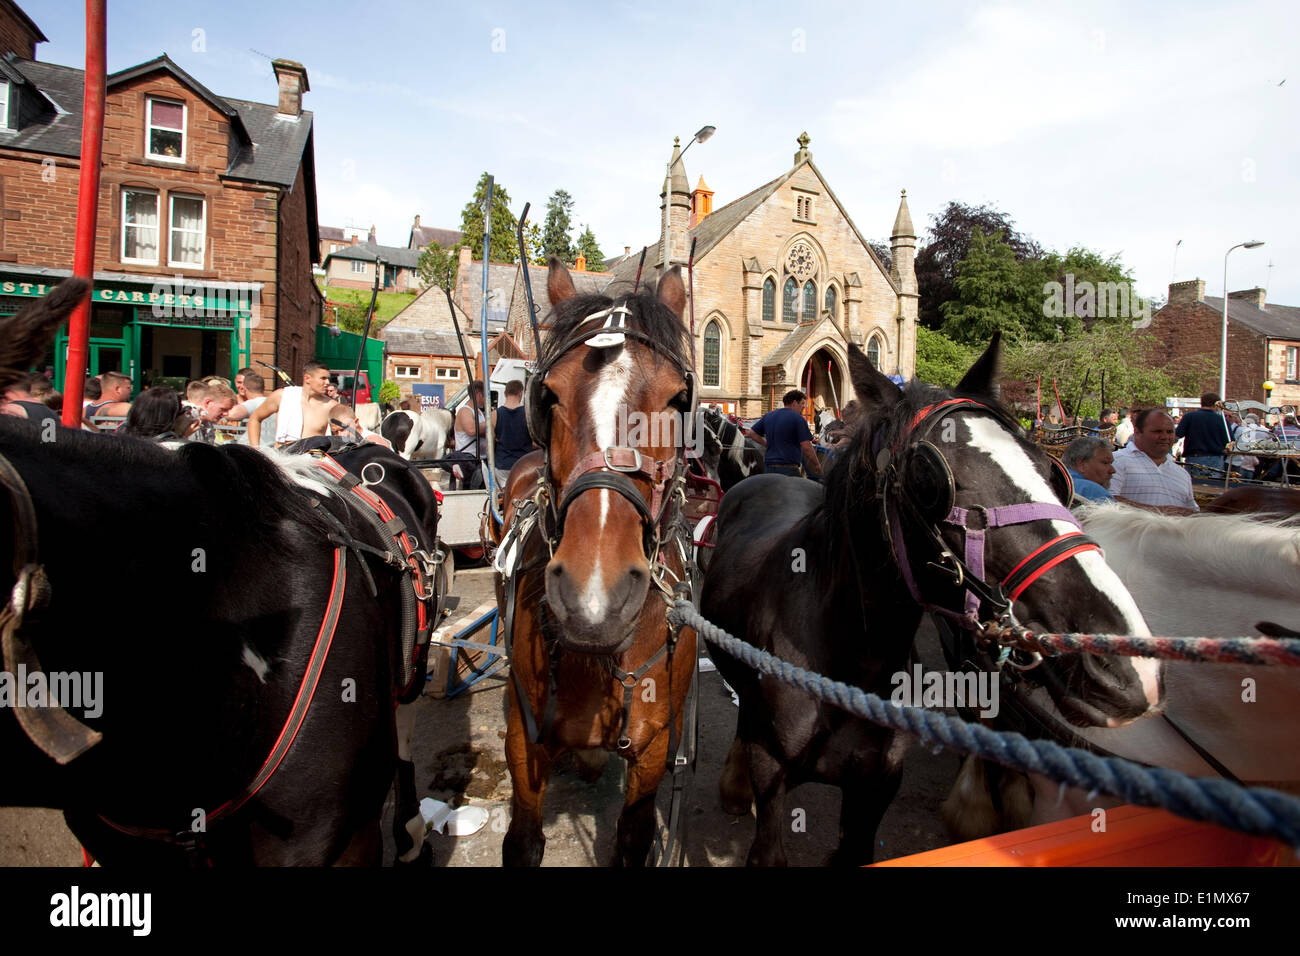 Appleby-in-Westmorland, Cumbria, England - June 06, 2014: Horses tethered in the street during the Appleby Horse Stock Photo